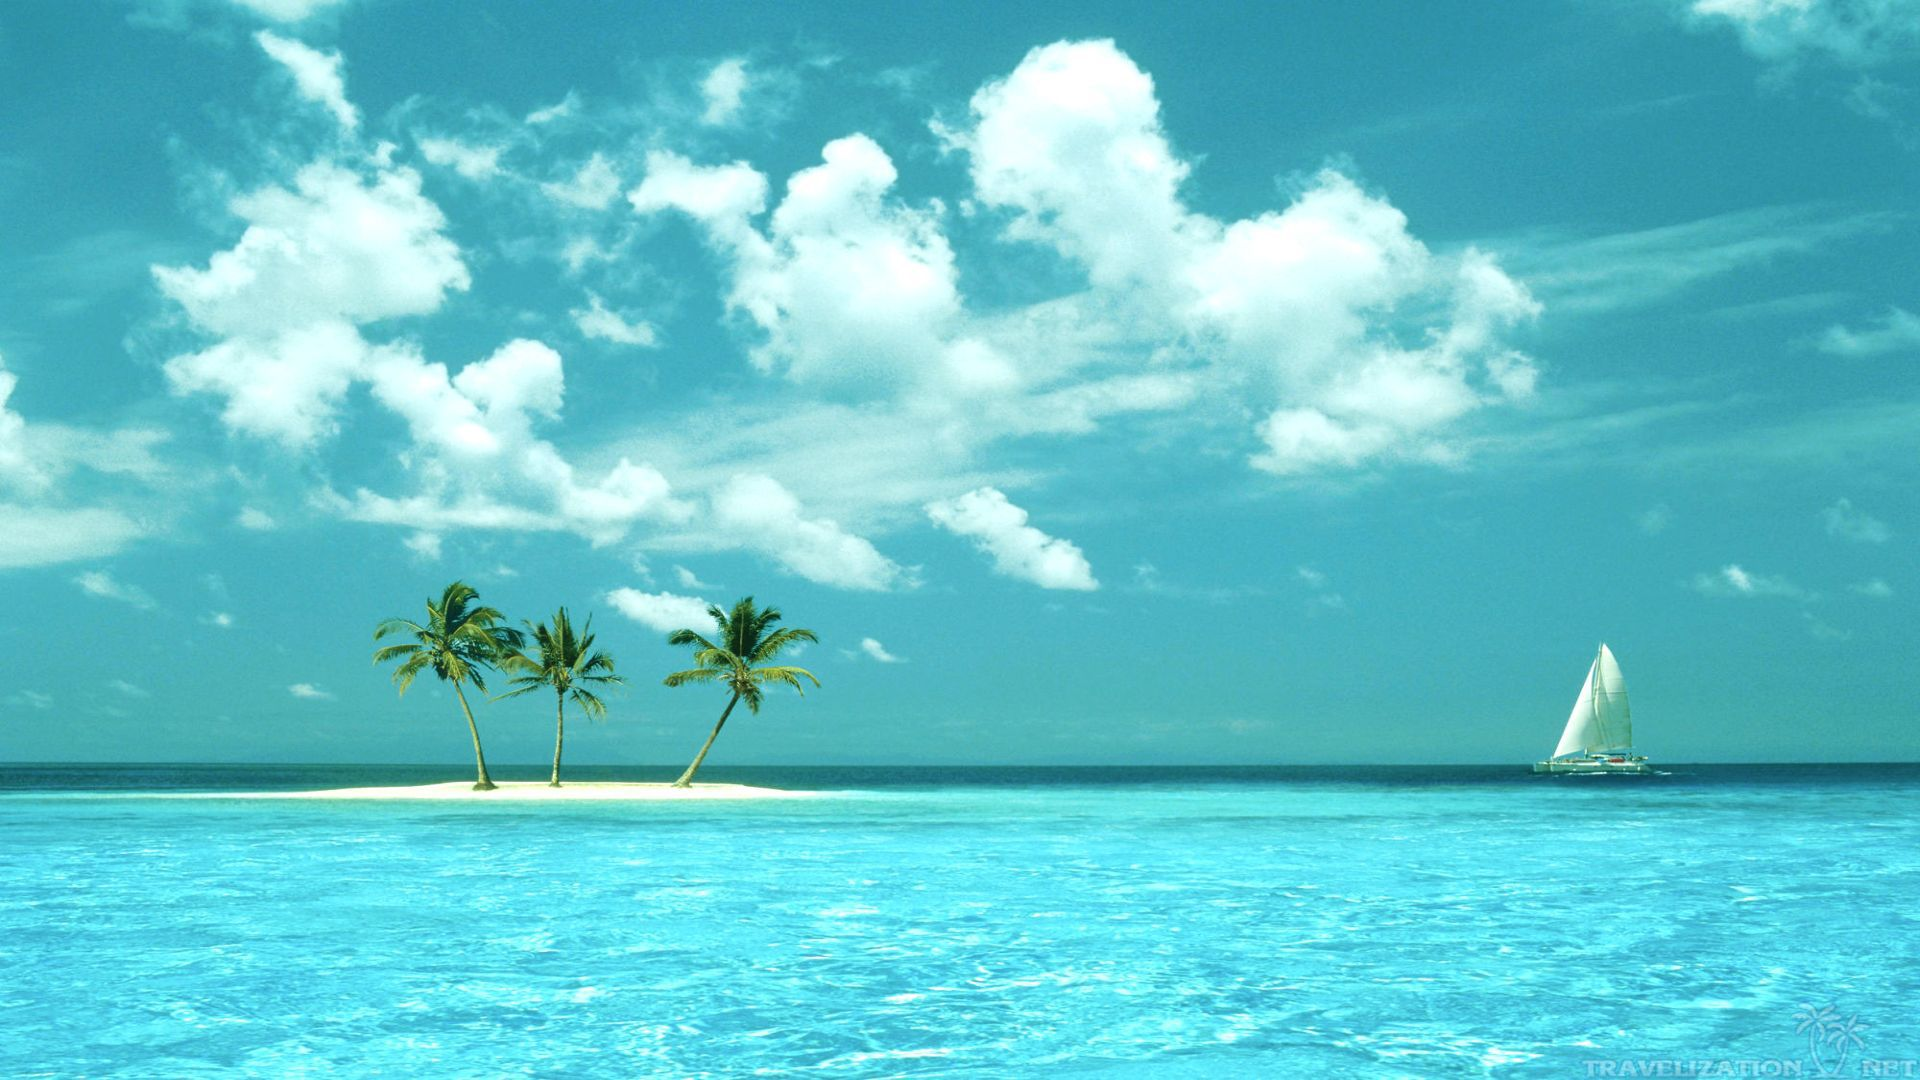 tropical paradise wallpaper - photo #39